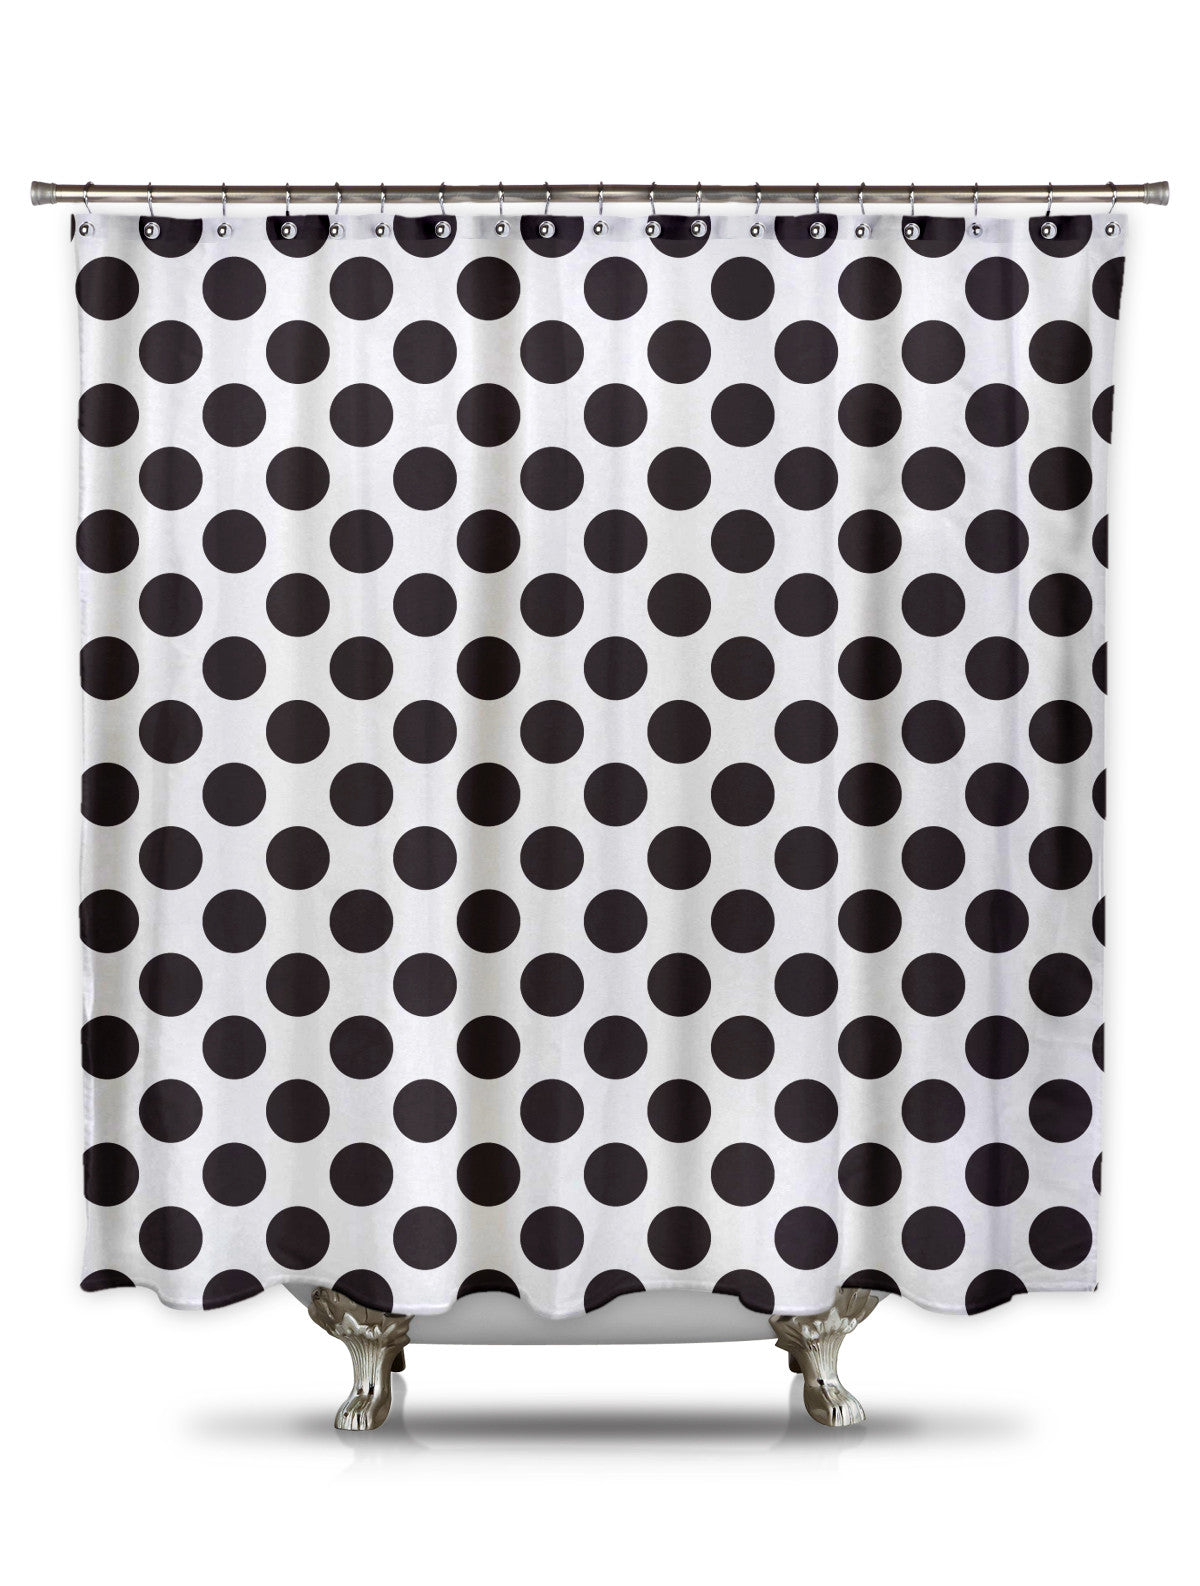 White and Black Polka-Dot Fabric Shower Curtain